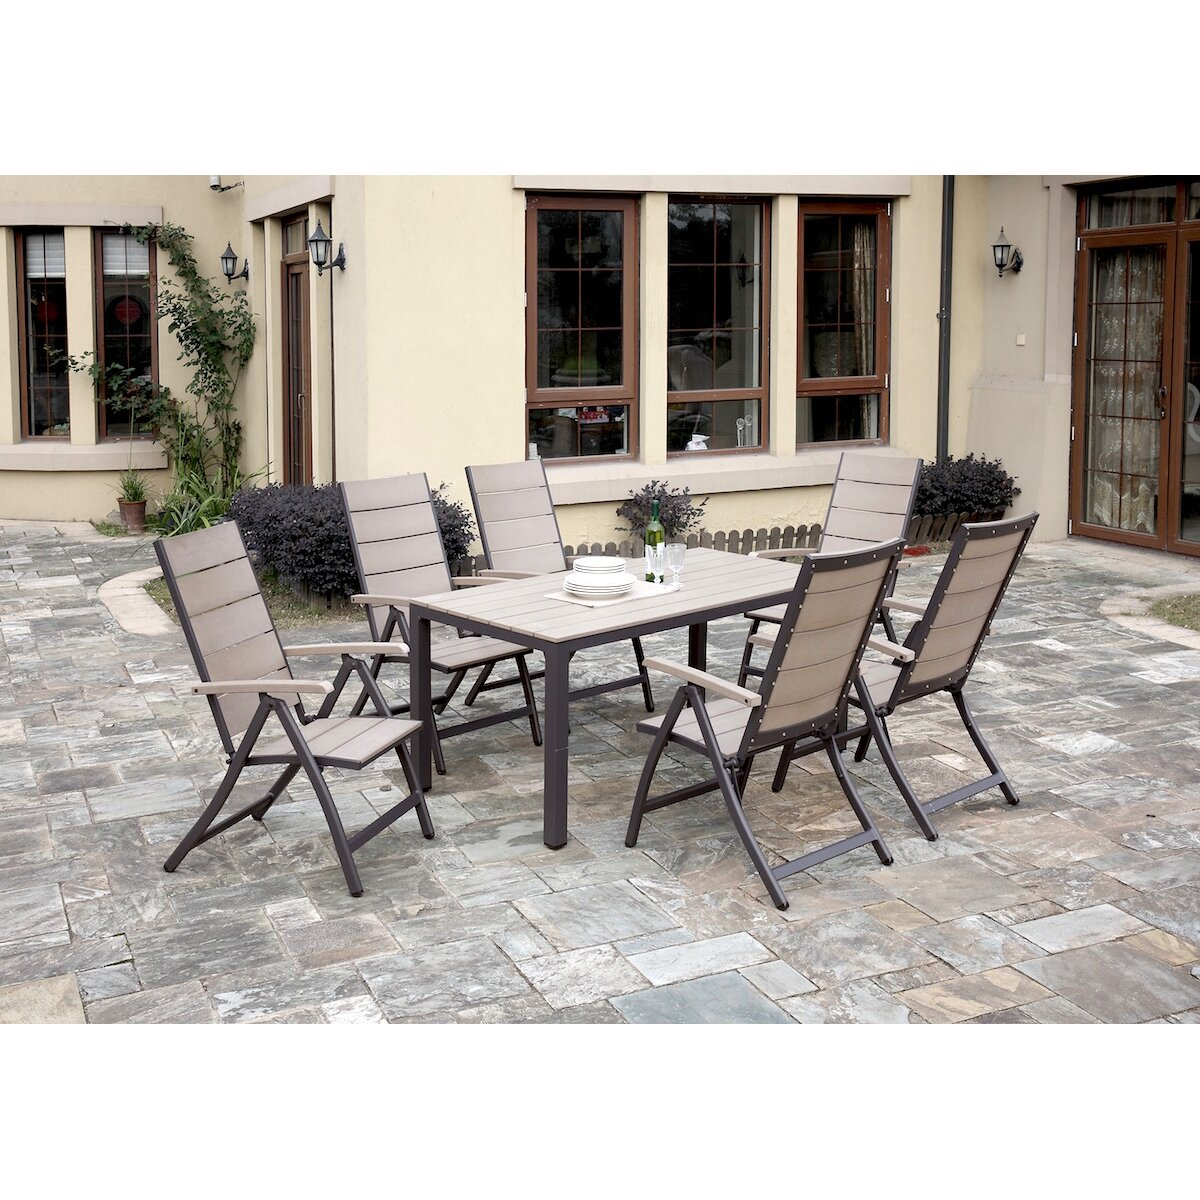 jb patio 7 piece dining set wayfair